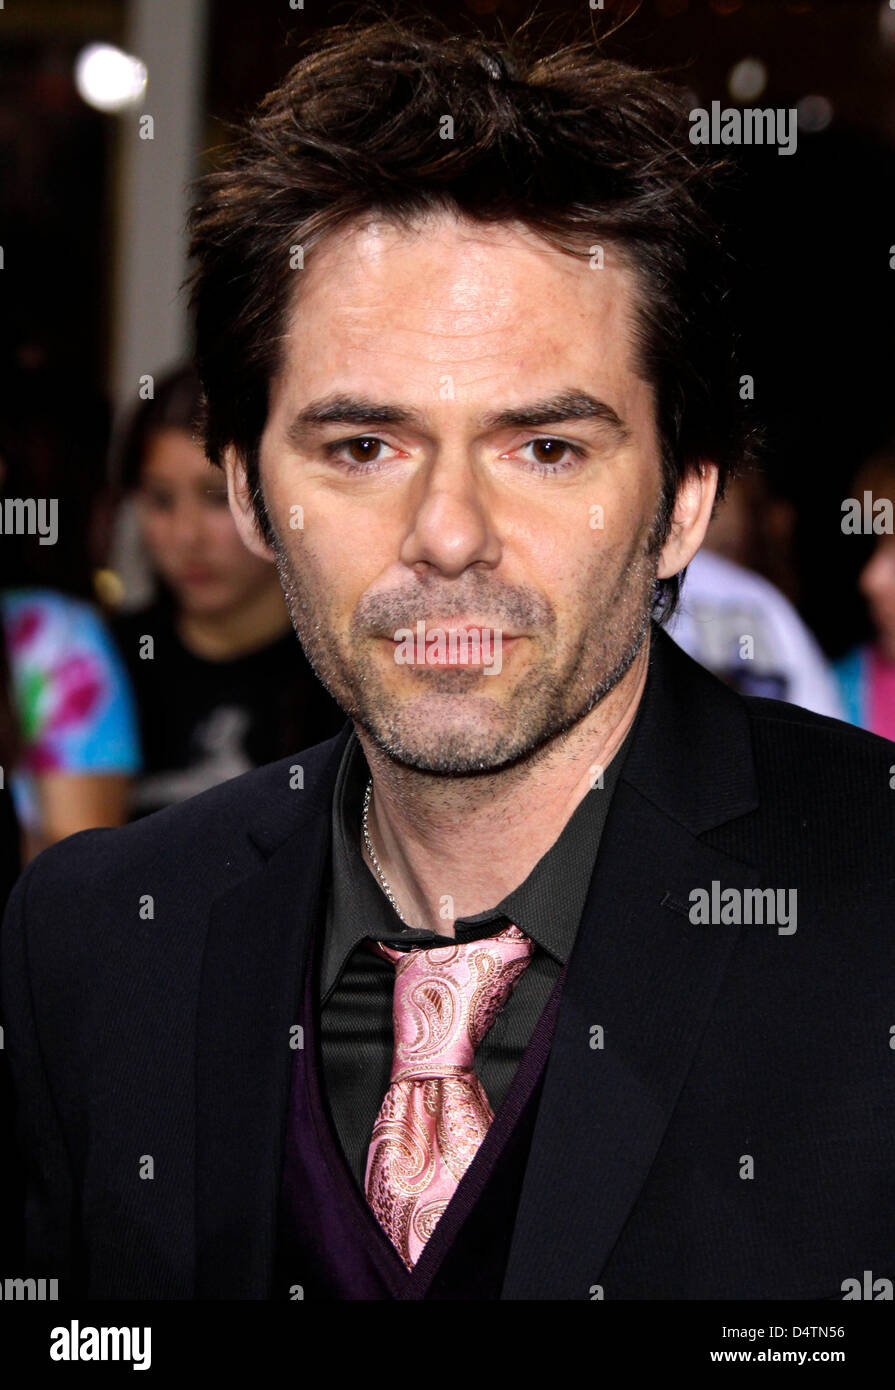 Actor Billy Burke arrives at the world premiere of the film 'Twilight: New Moon' at Bruin and Village Theaters - Stock Image